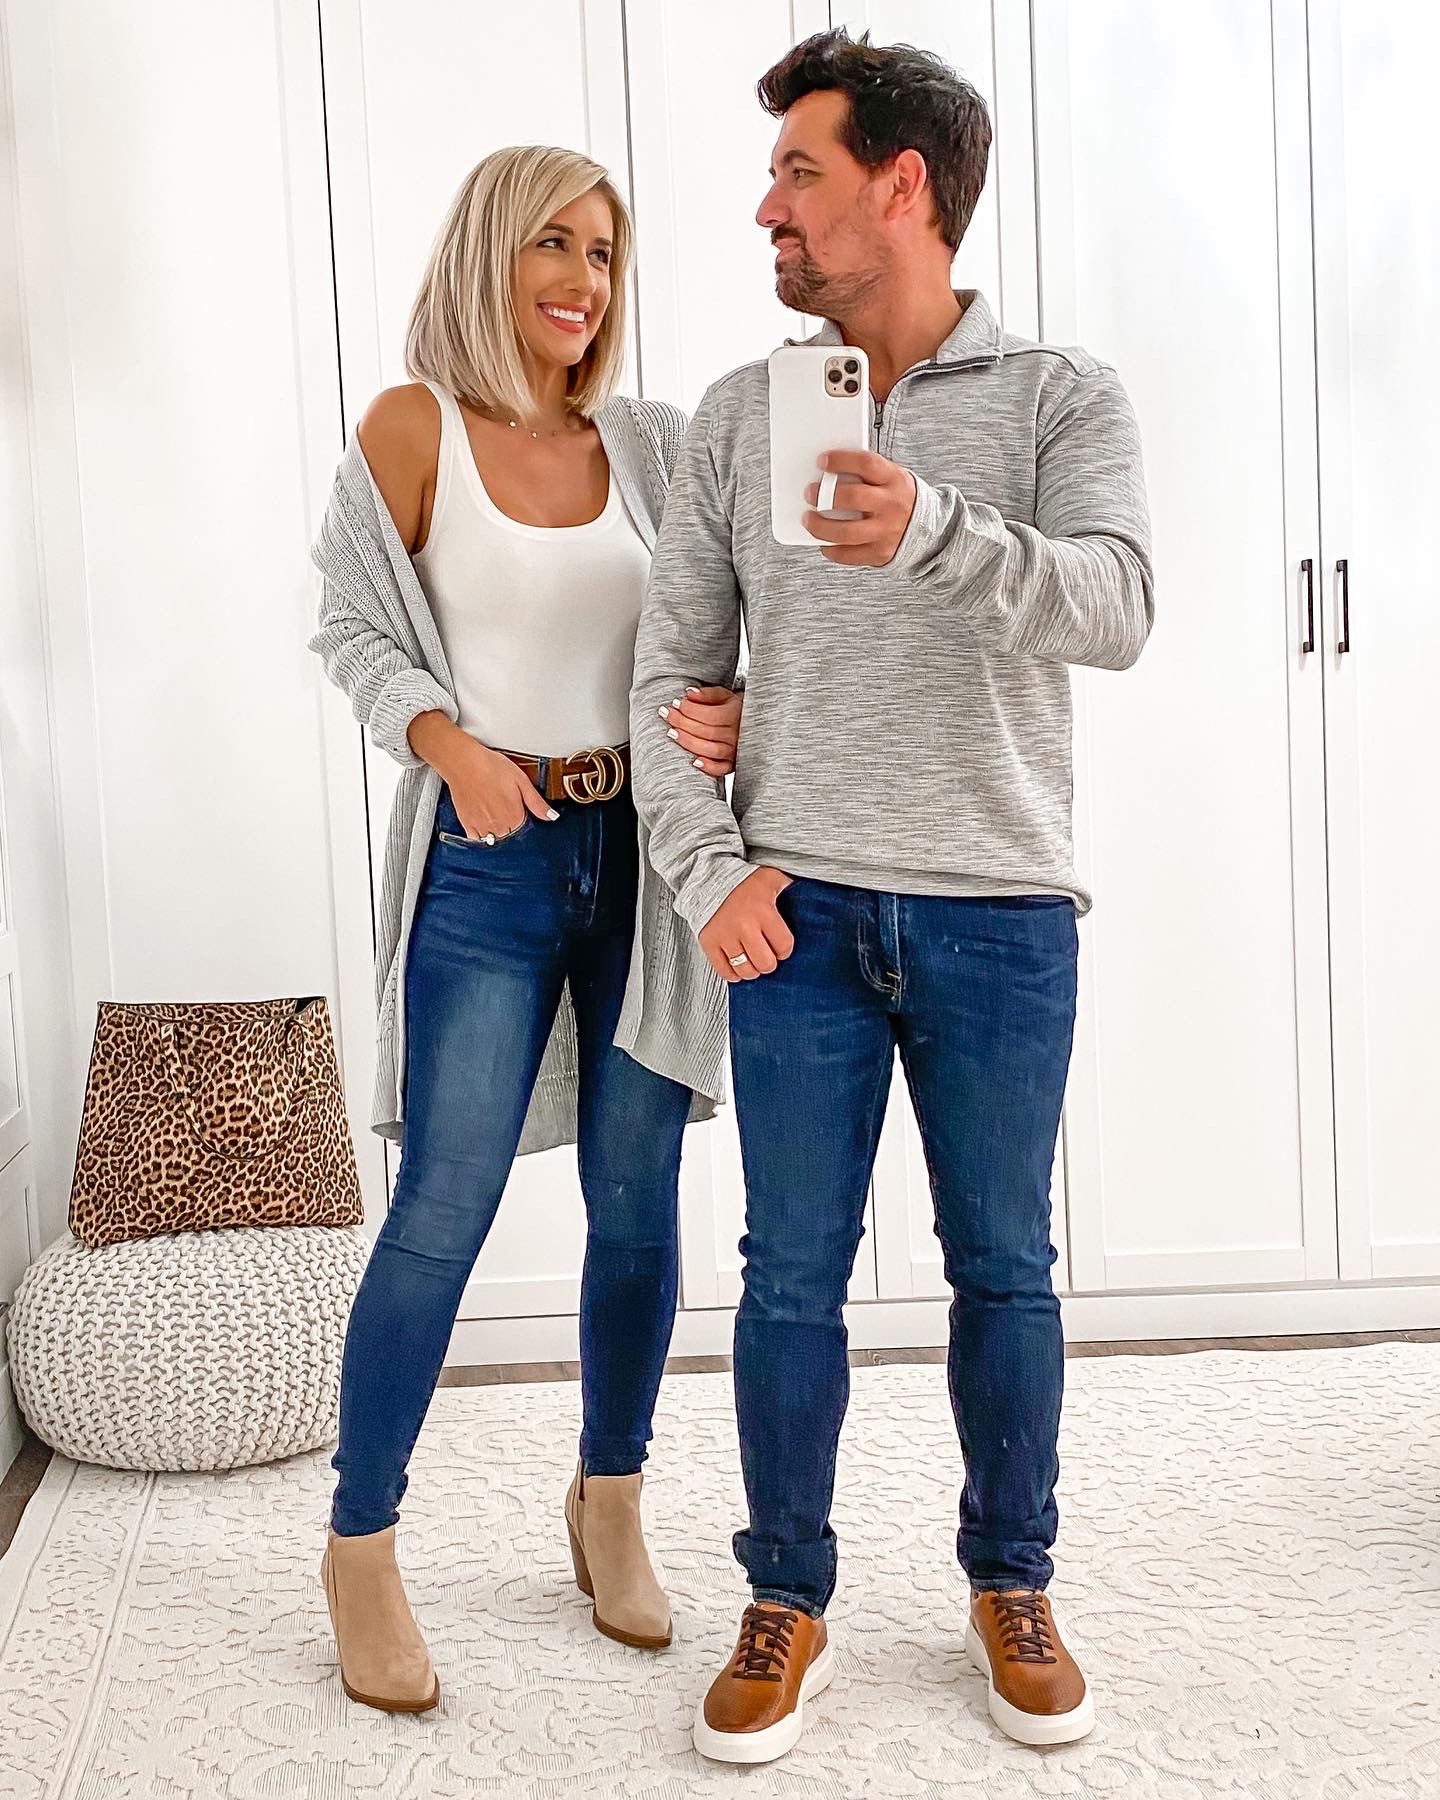 Casual HIS & HERS COUPLE Fall outfit Idea Laura Beverlin3